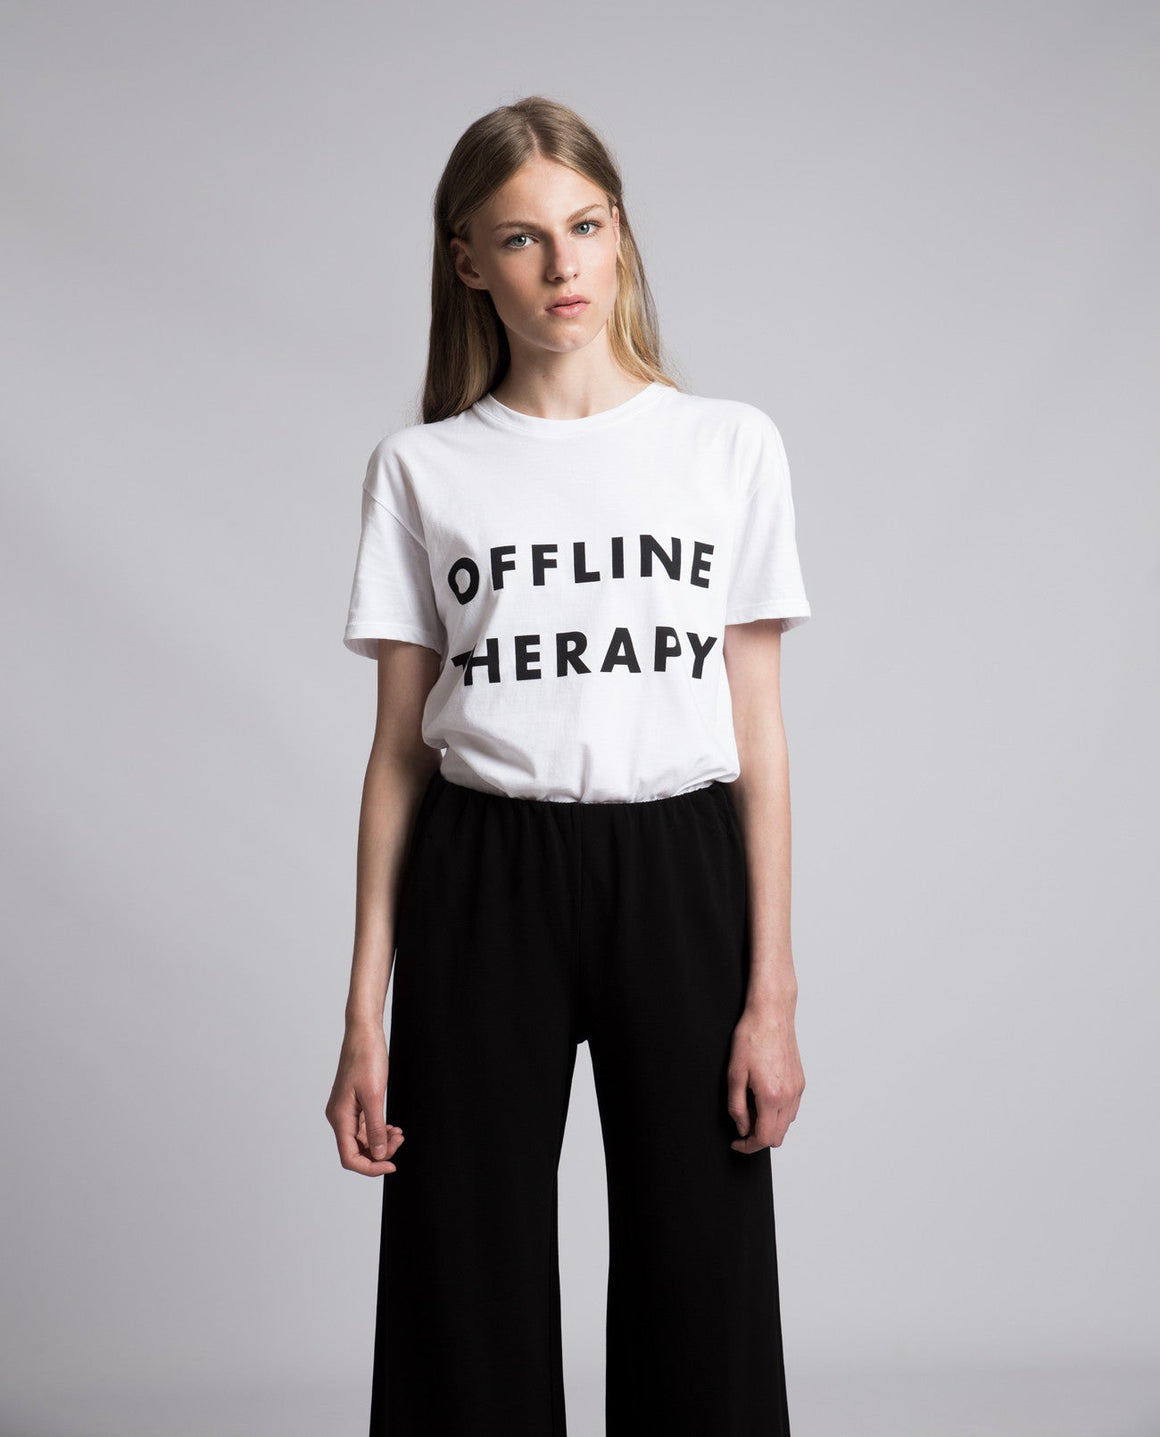 Offline Therapy Tee - Local Pattern